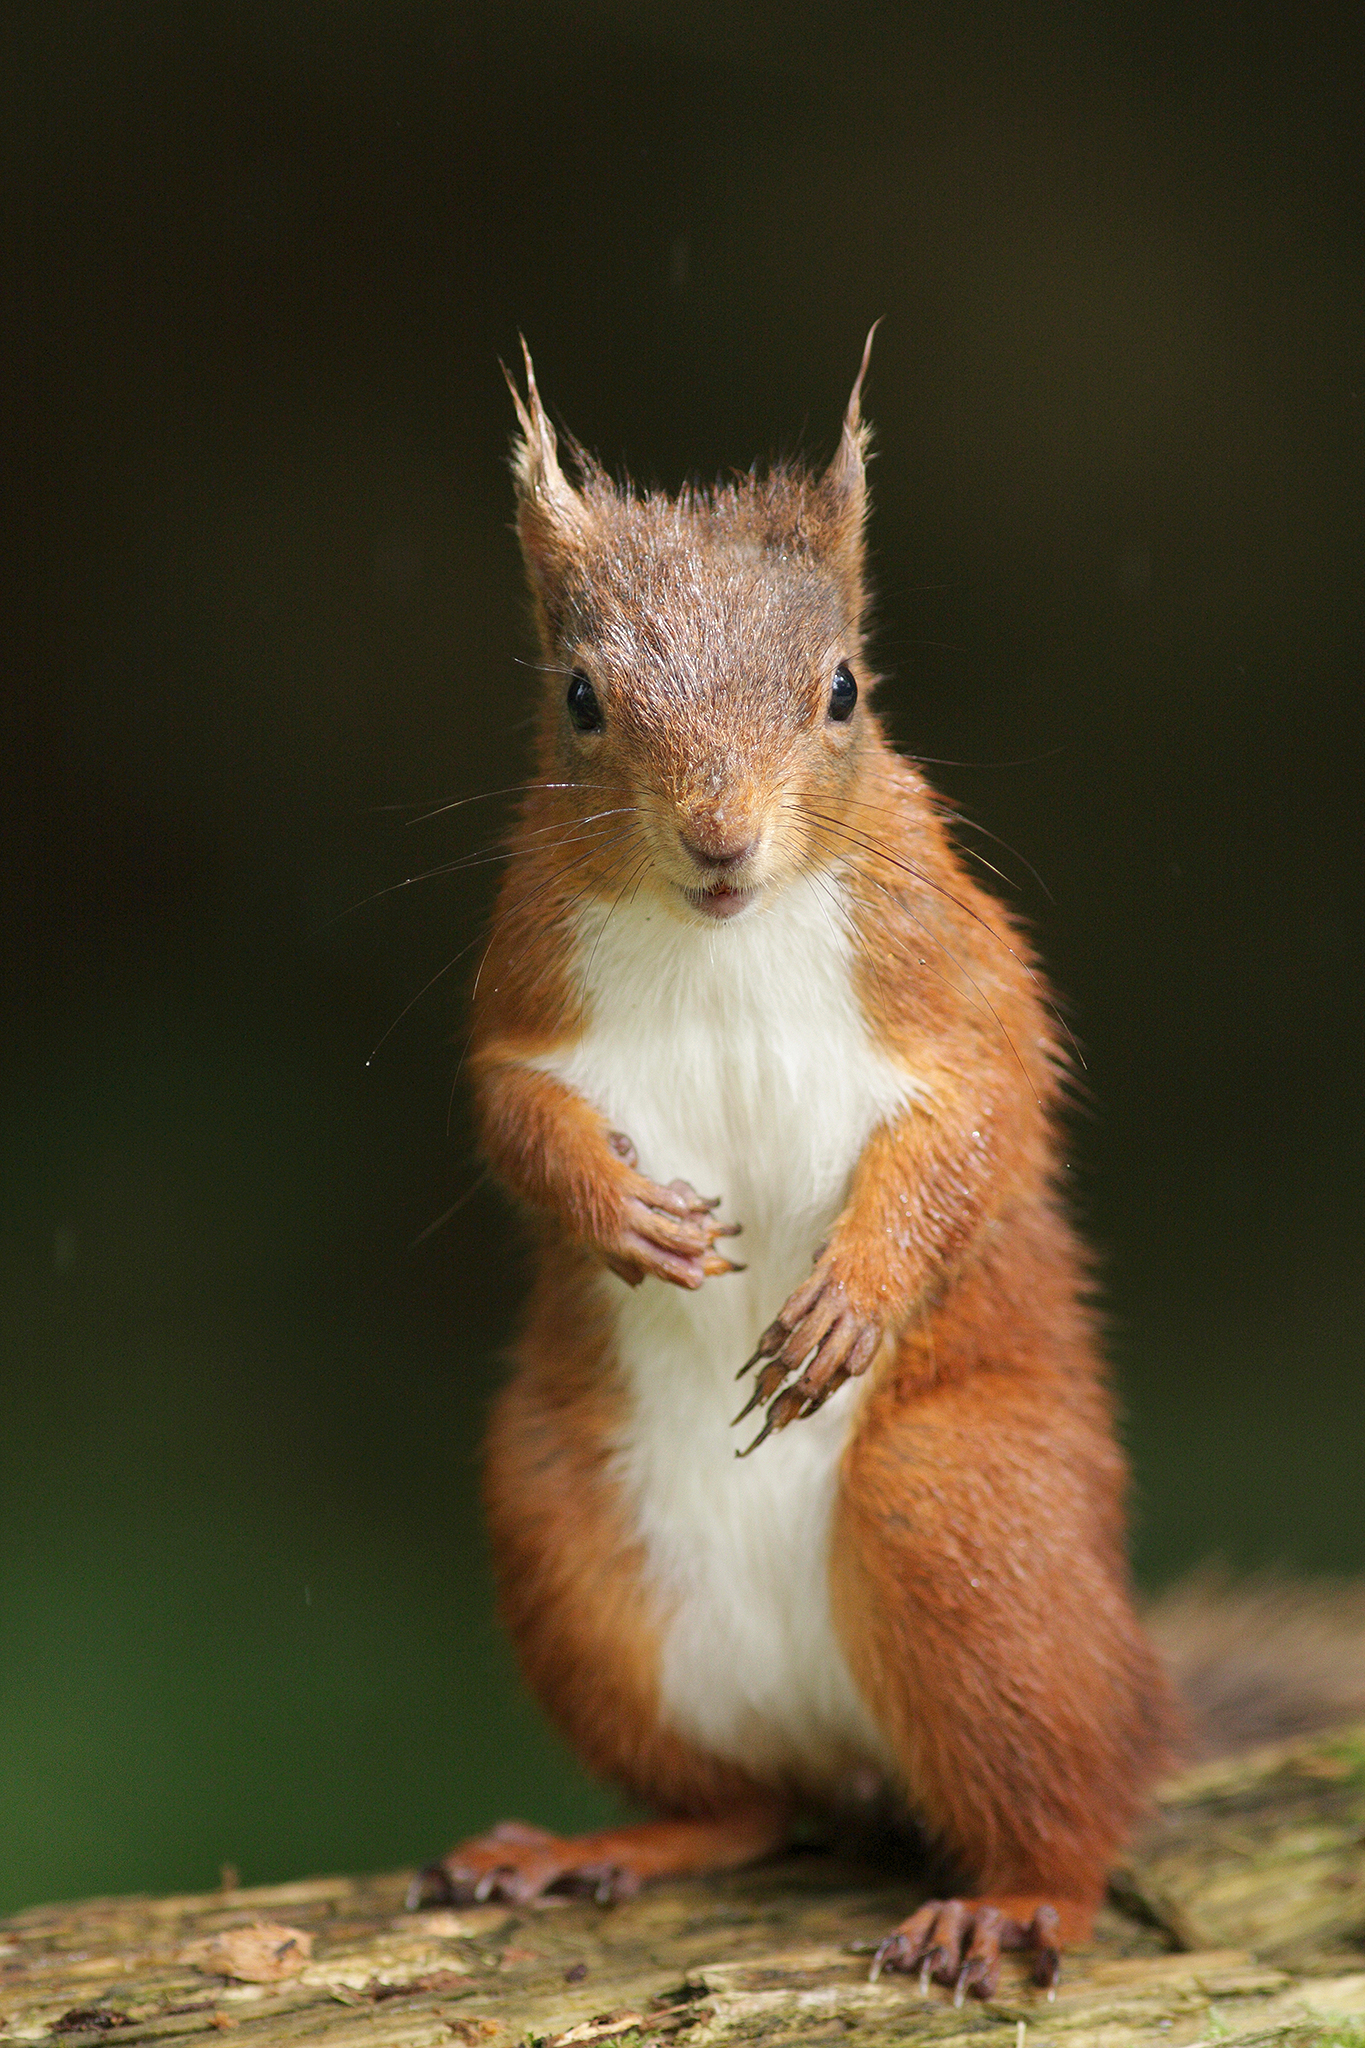 redsquirreleurasian